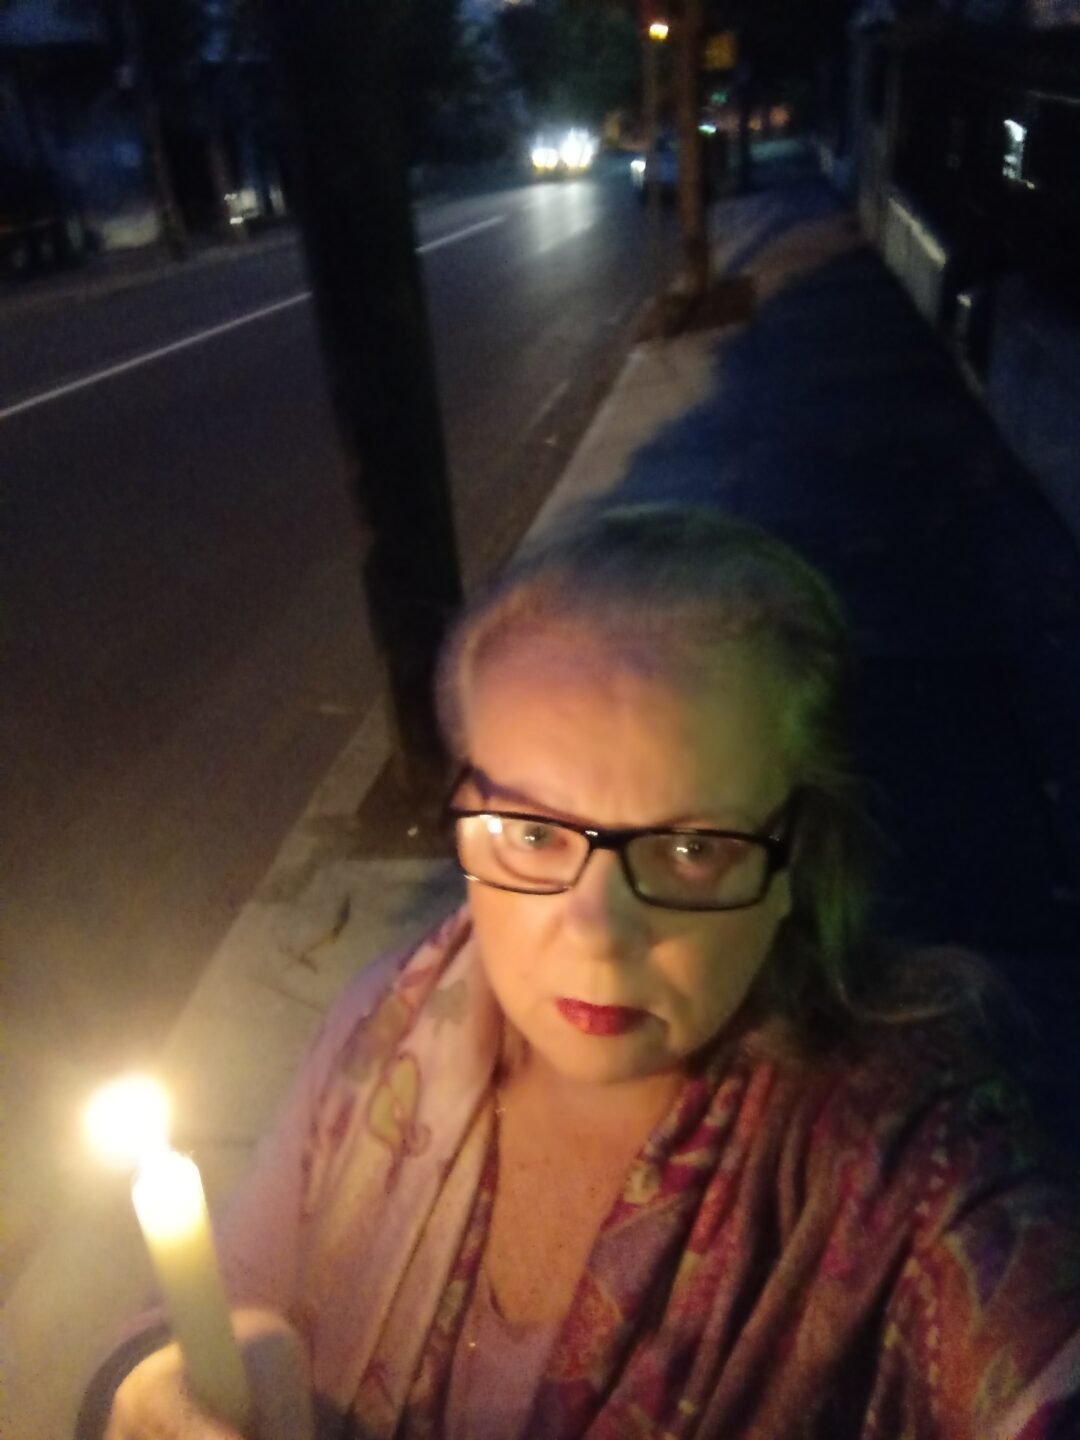 A woman holding a candle outside at dawn.